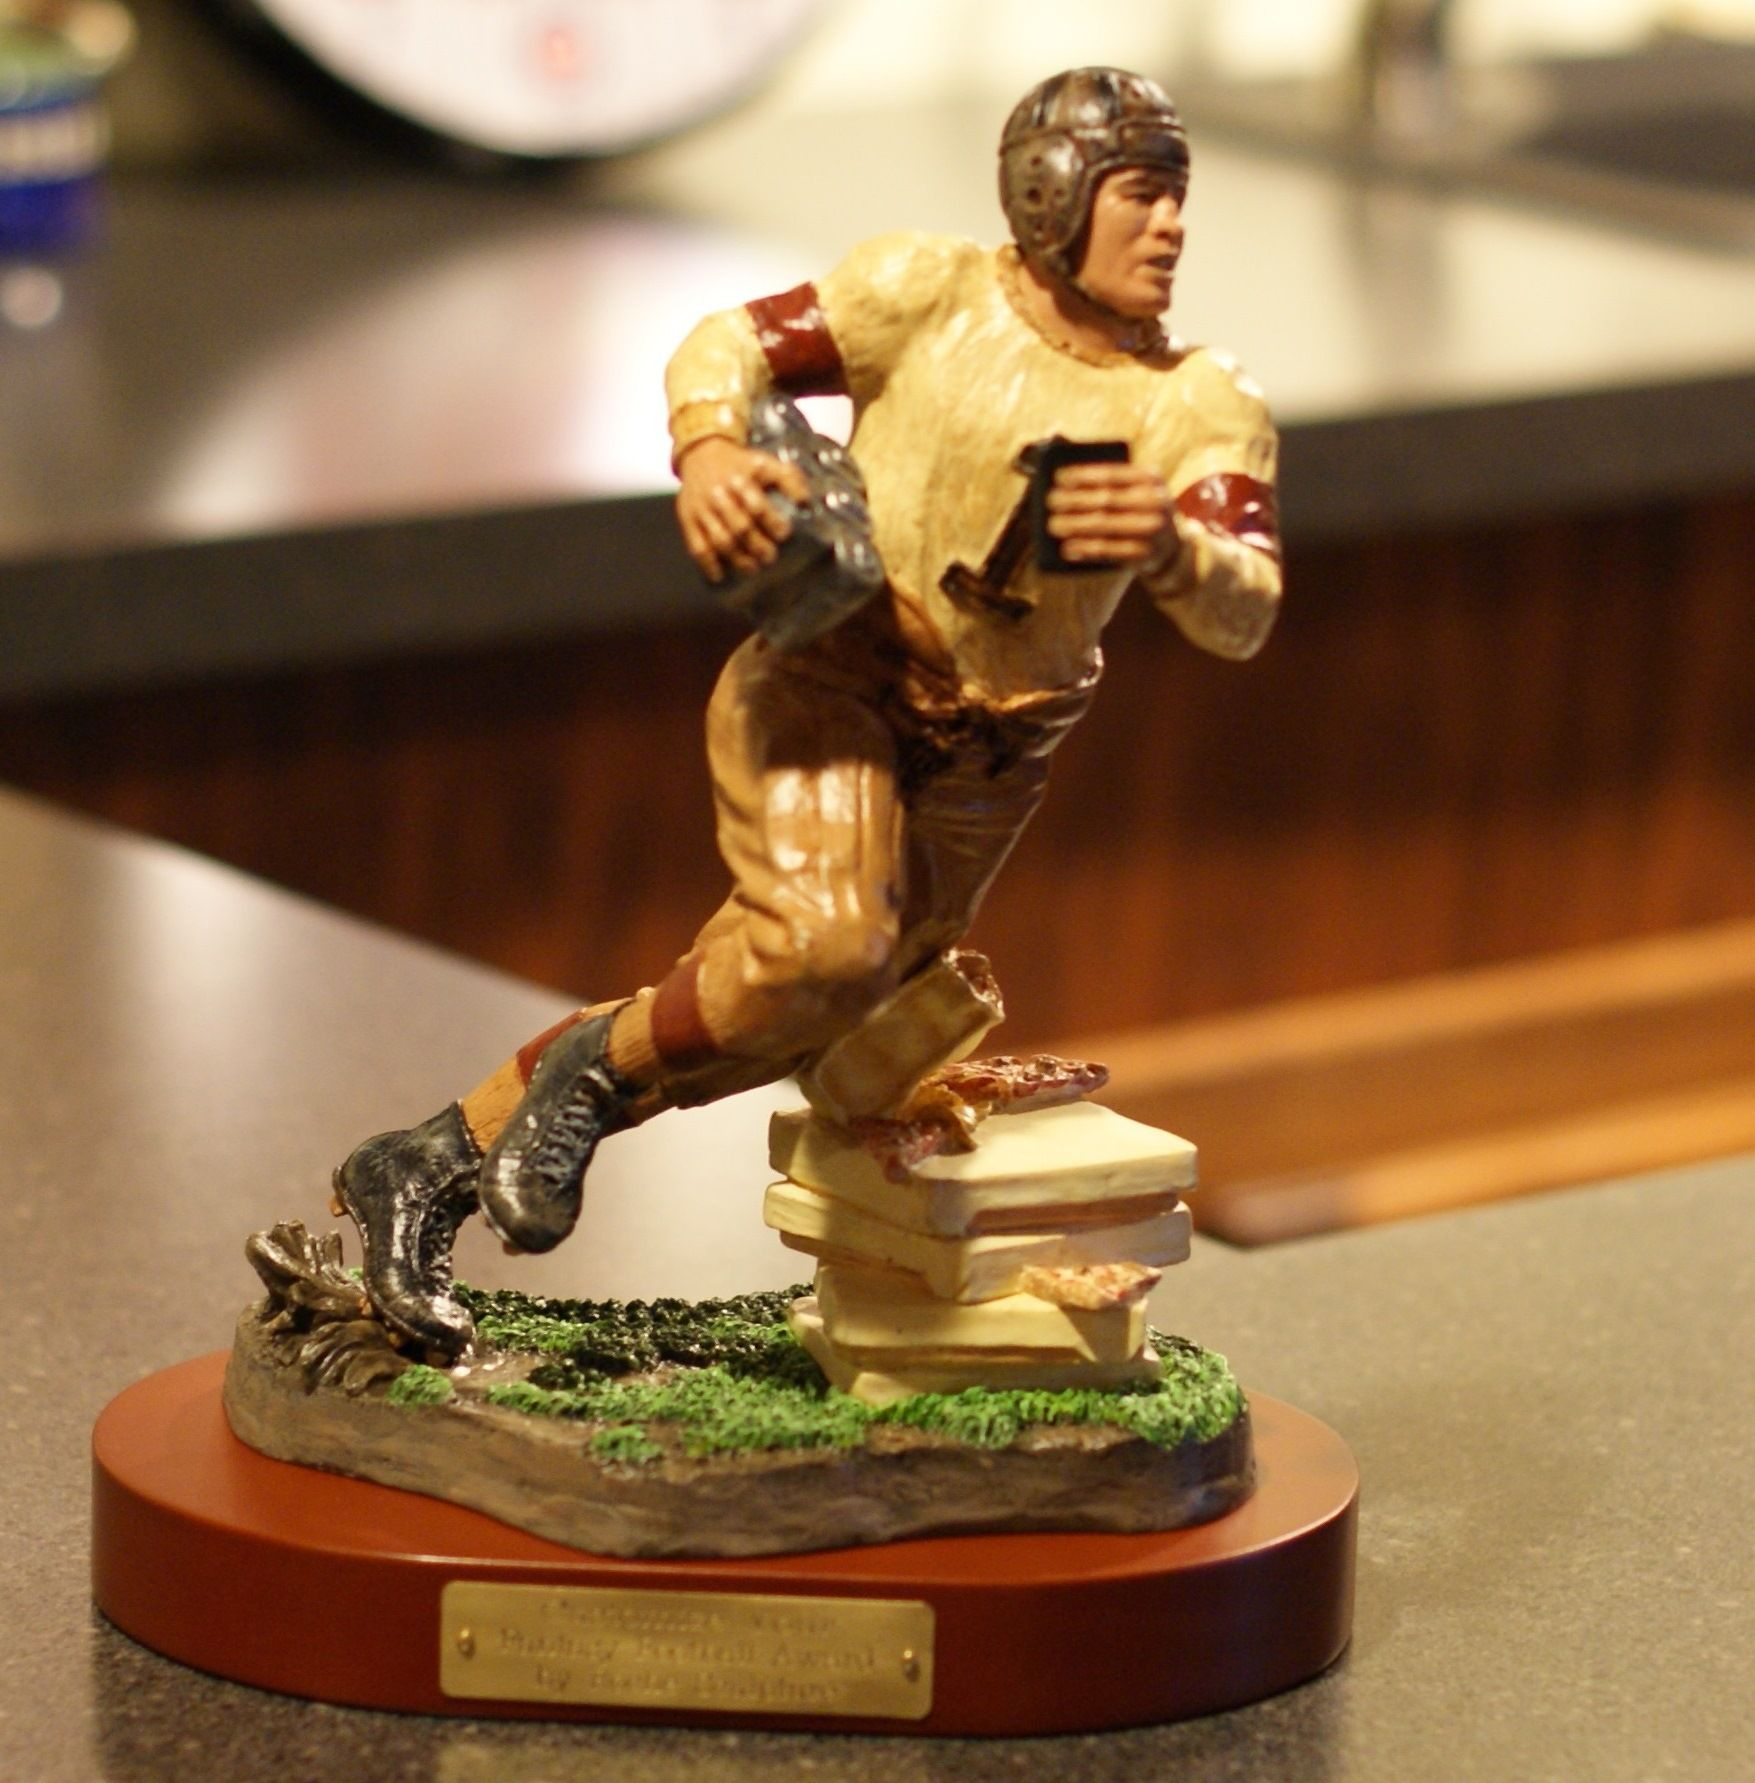 Unique Fantasy Football Trophy (Hand Sculpted & Painted